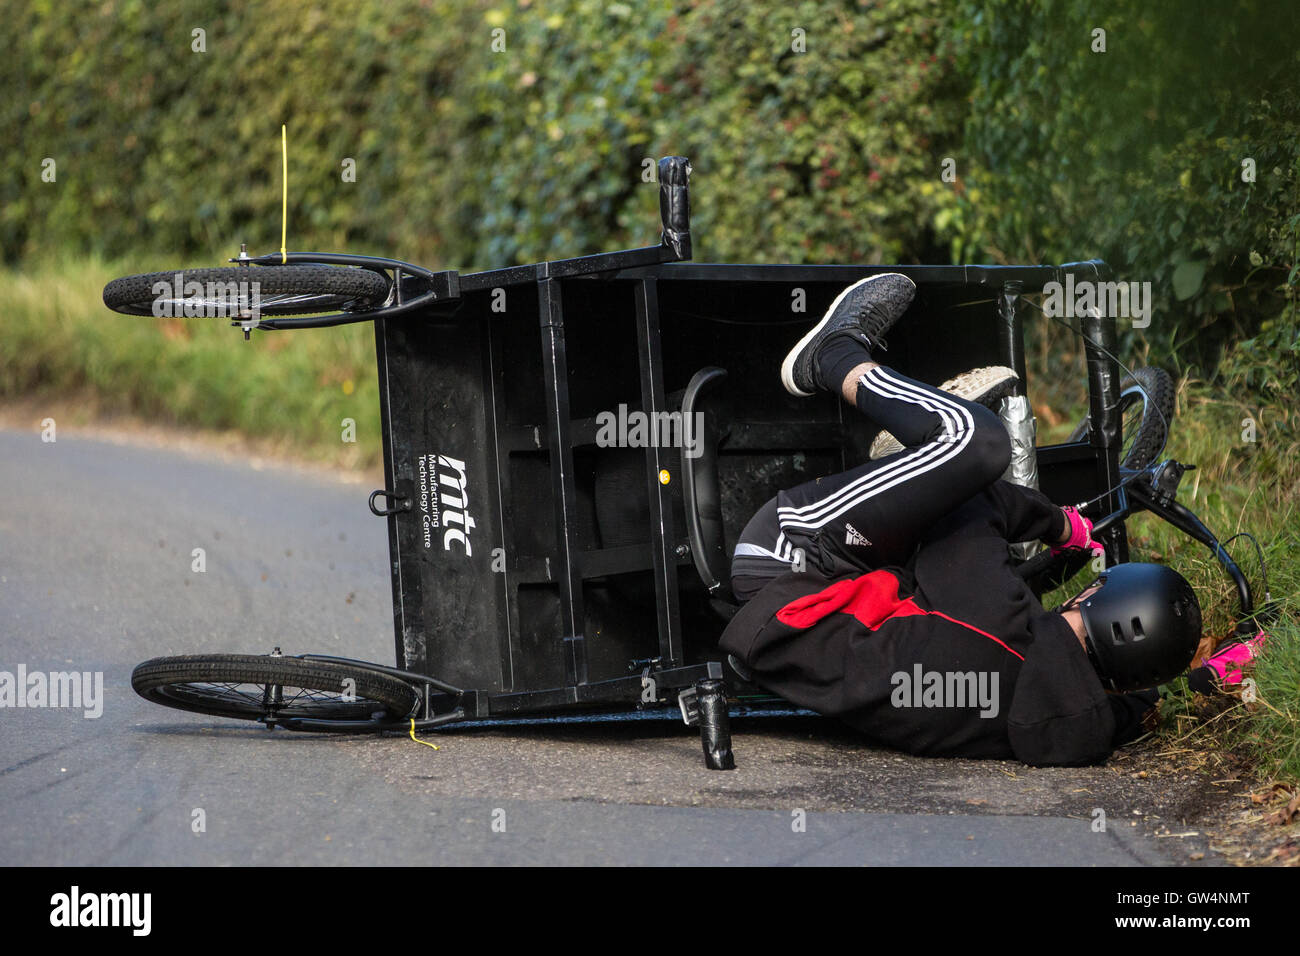 Cookham Dean, UK. 11th Sep, 2016. A custom-built go-kart crashes into the verge during the Cookham Dean Gravity - Stock Image